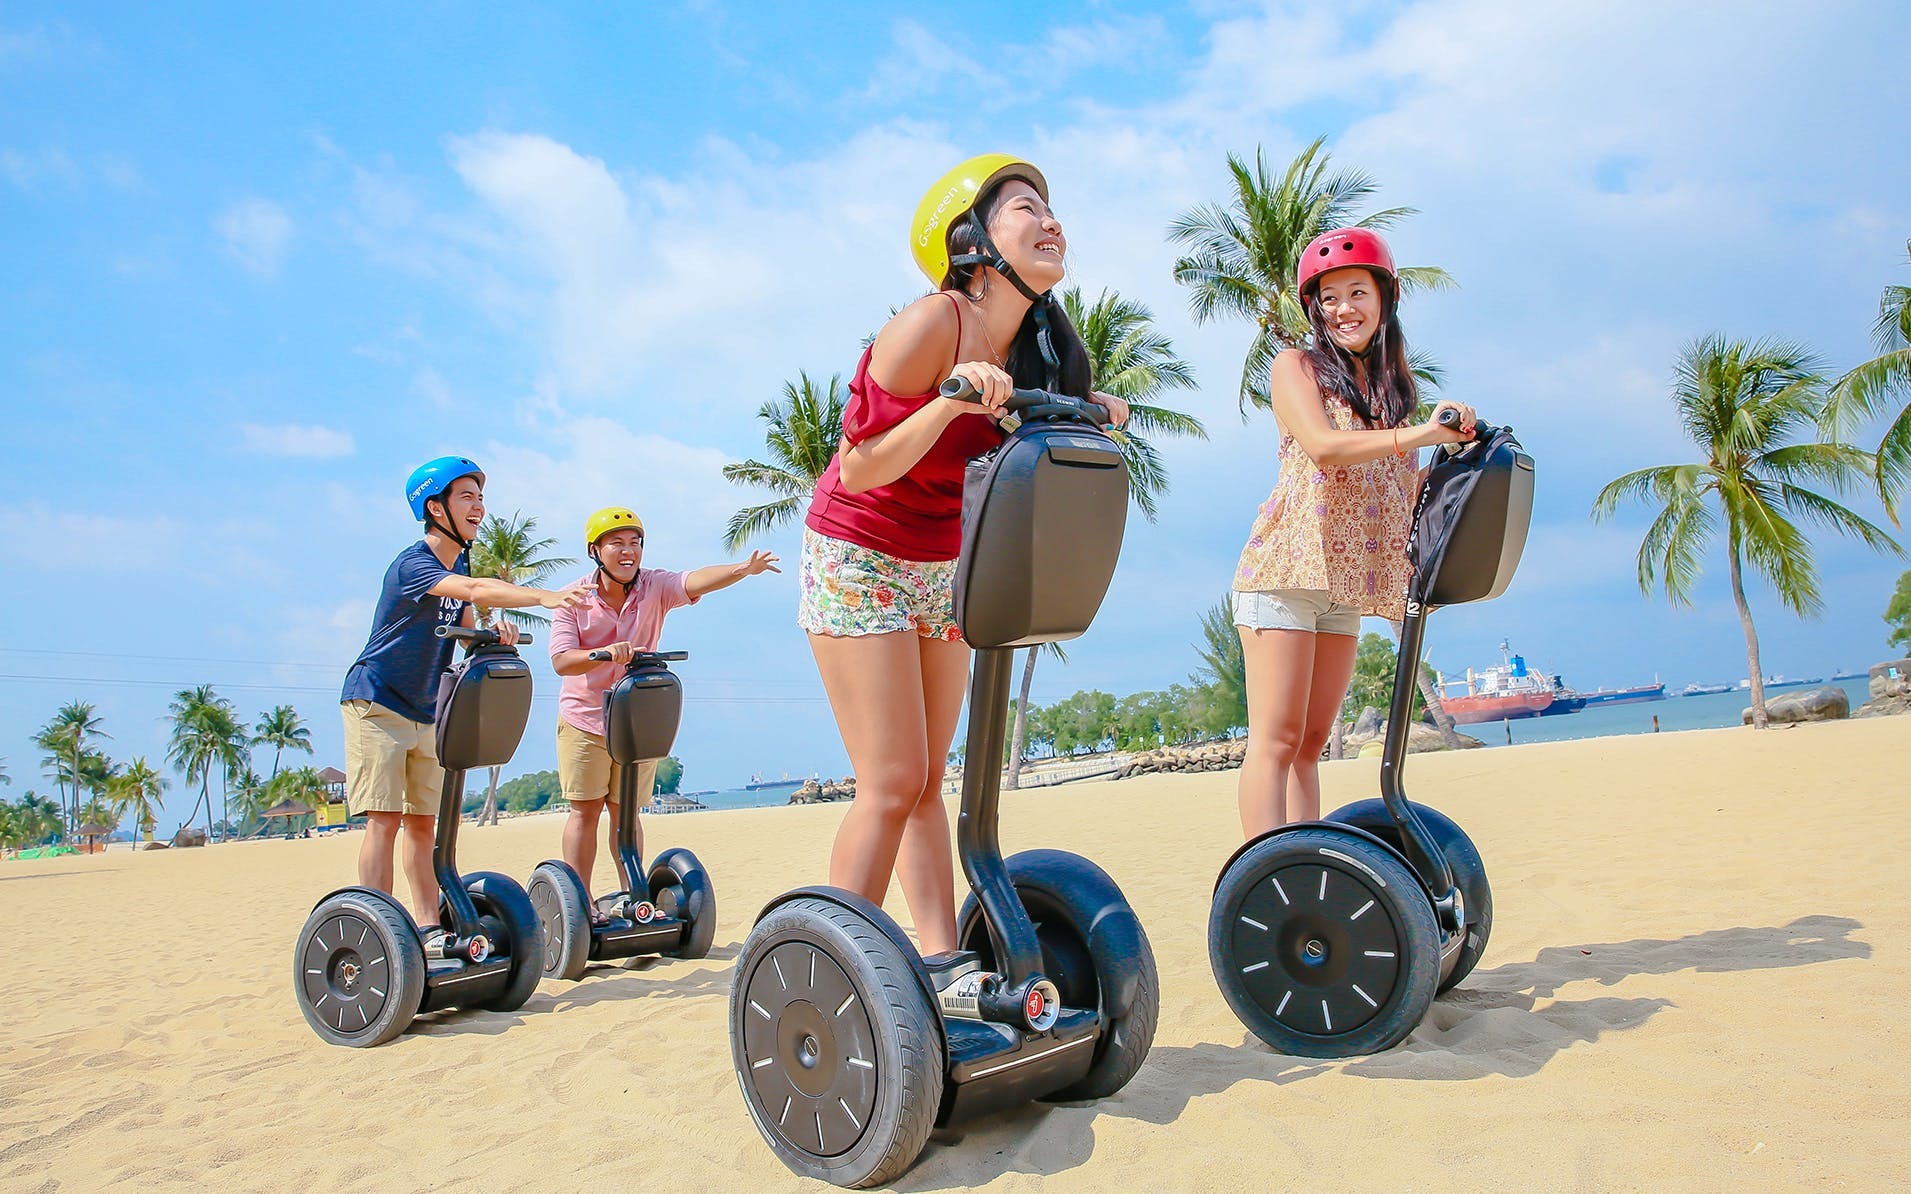 go green segway fun ride tour of sentosa-2